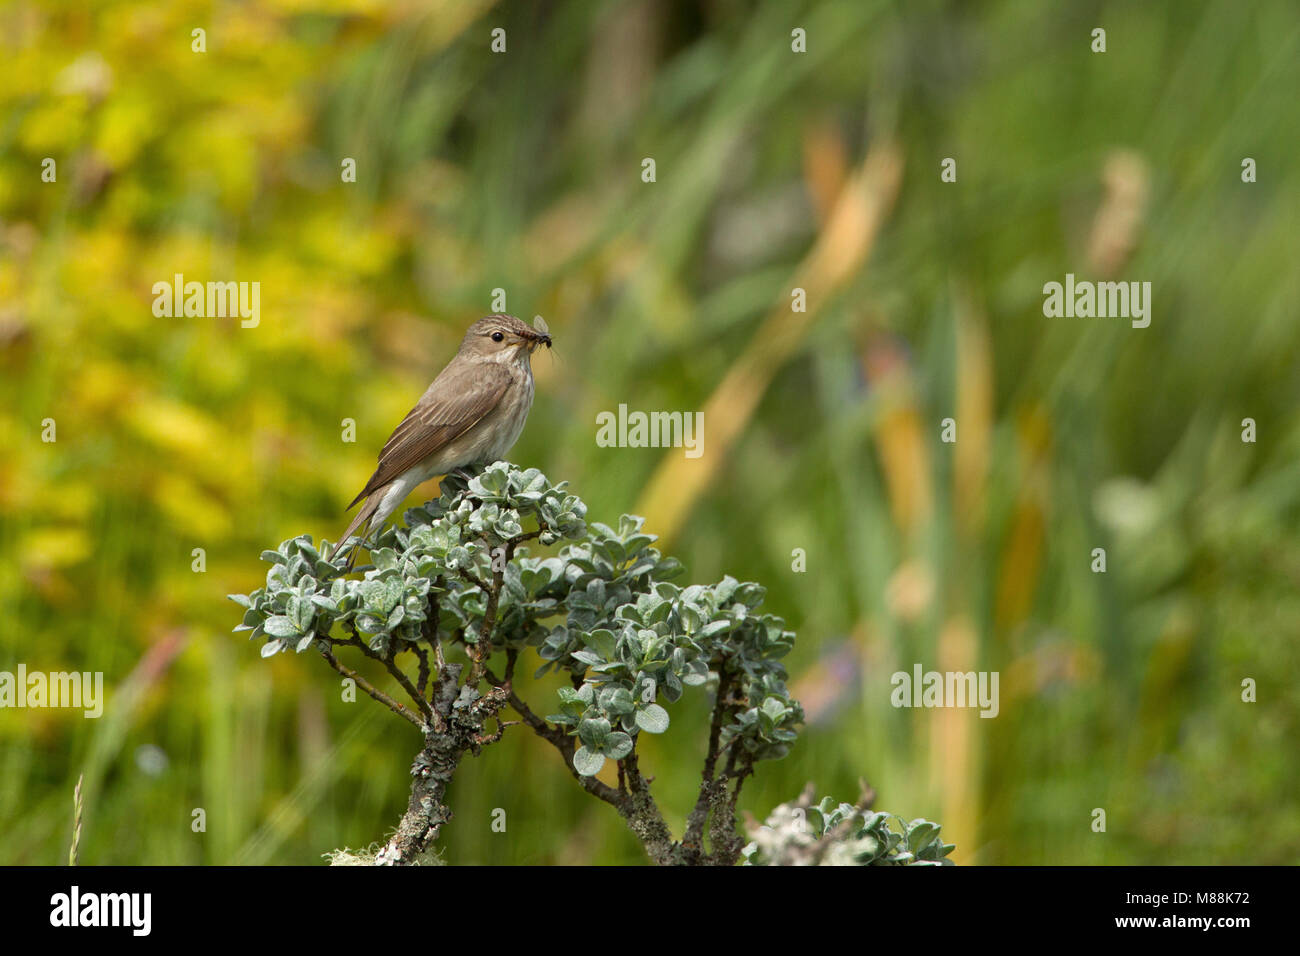 Spotted Flycatcher, Muscicapa striata, single adult perched on top of shrub with insect in bill. Summer migrant. - Stock Image